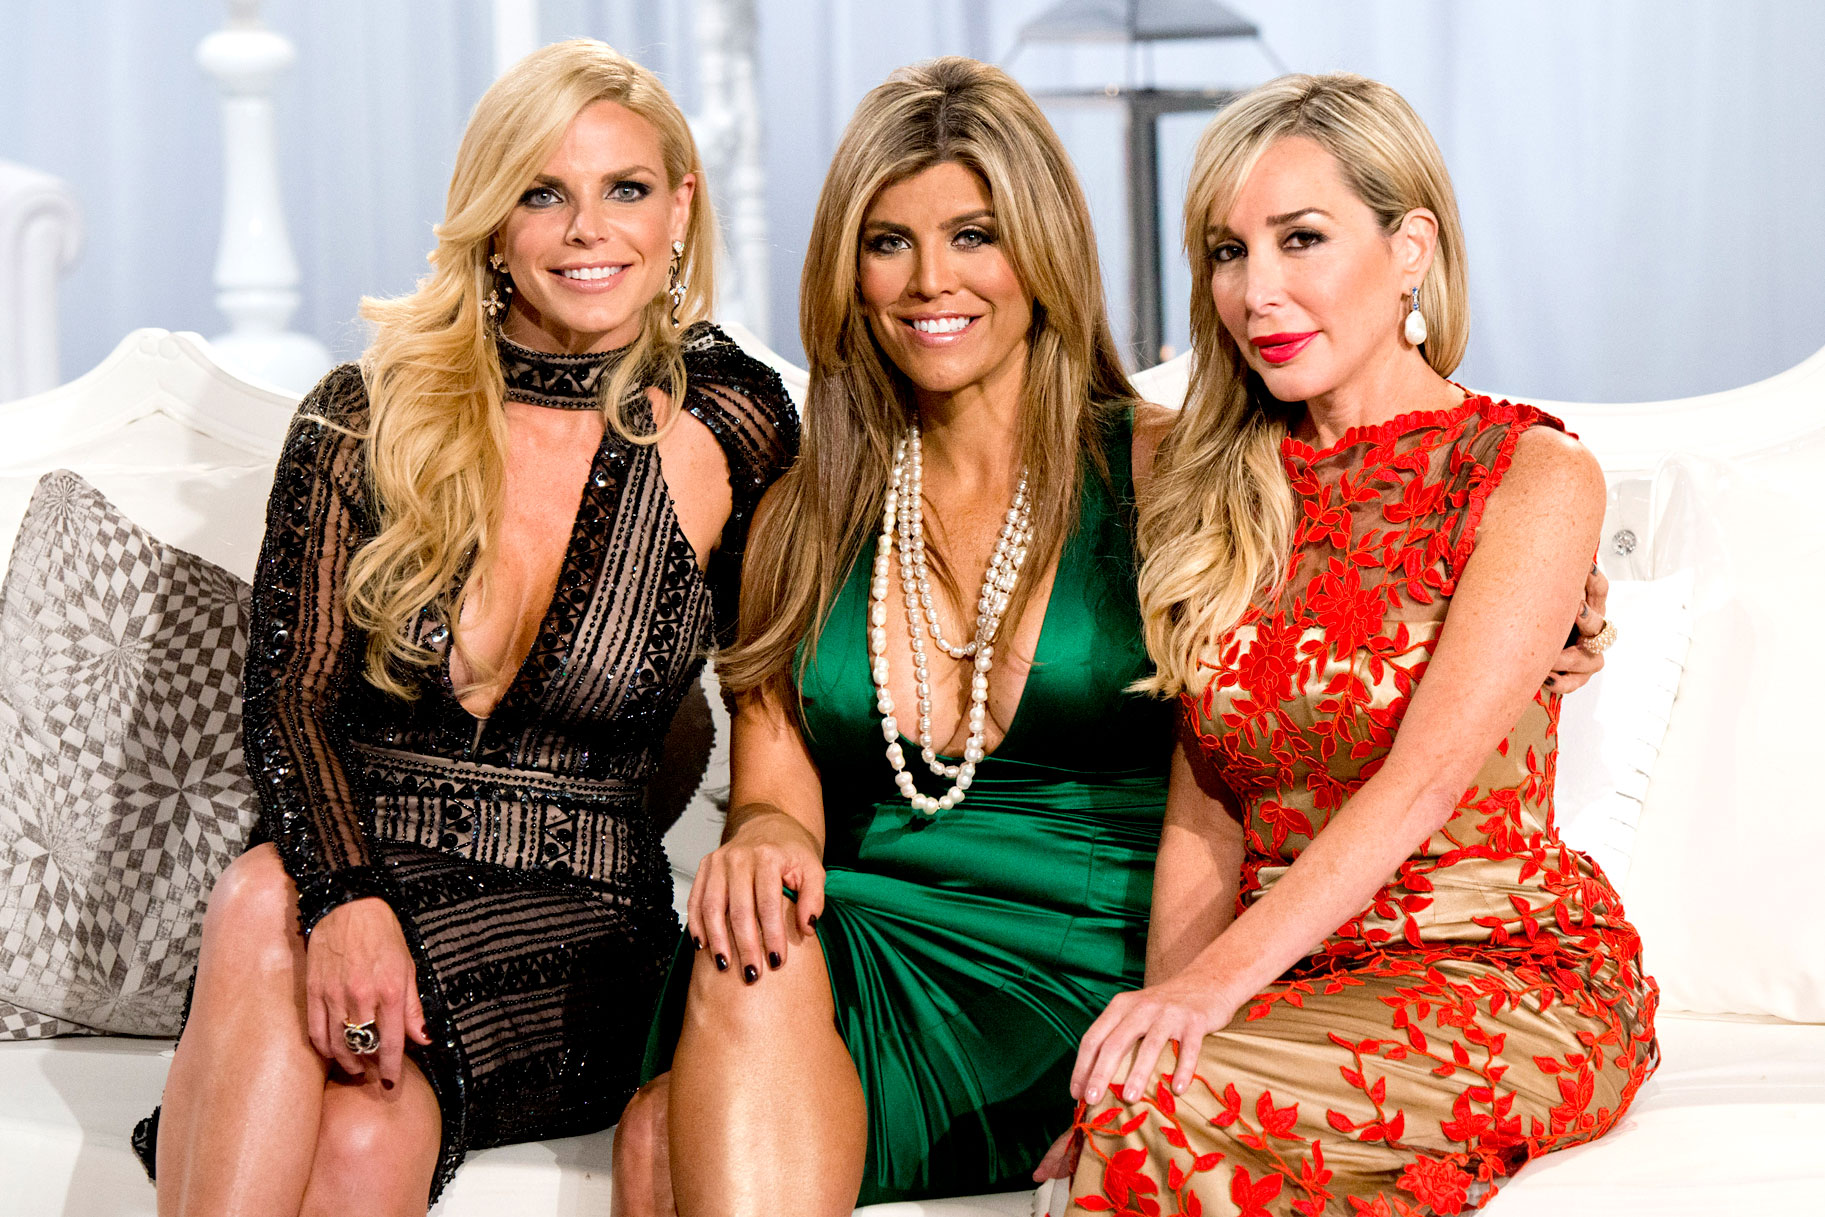 ‎The Real Housewives of Miami, Season 2 on iTunes